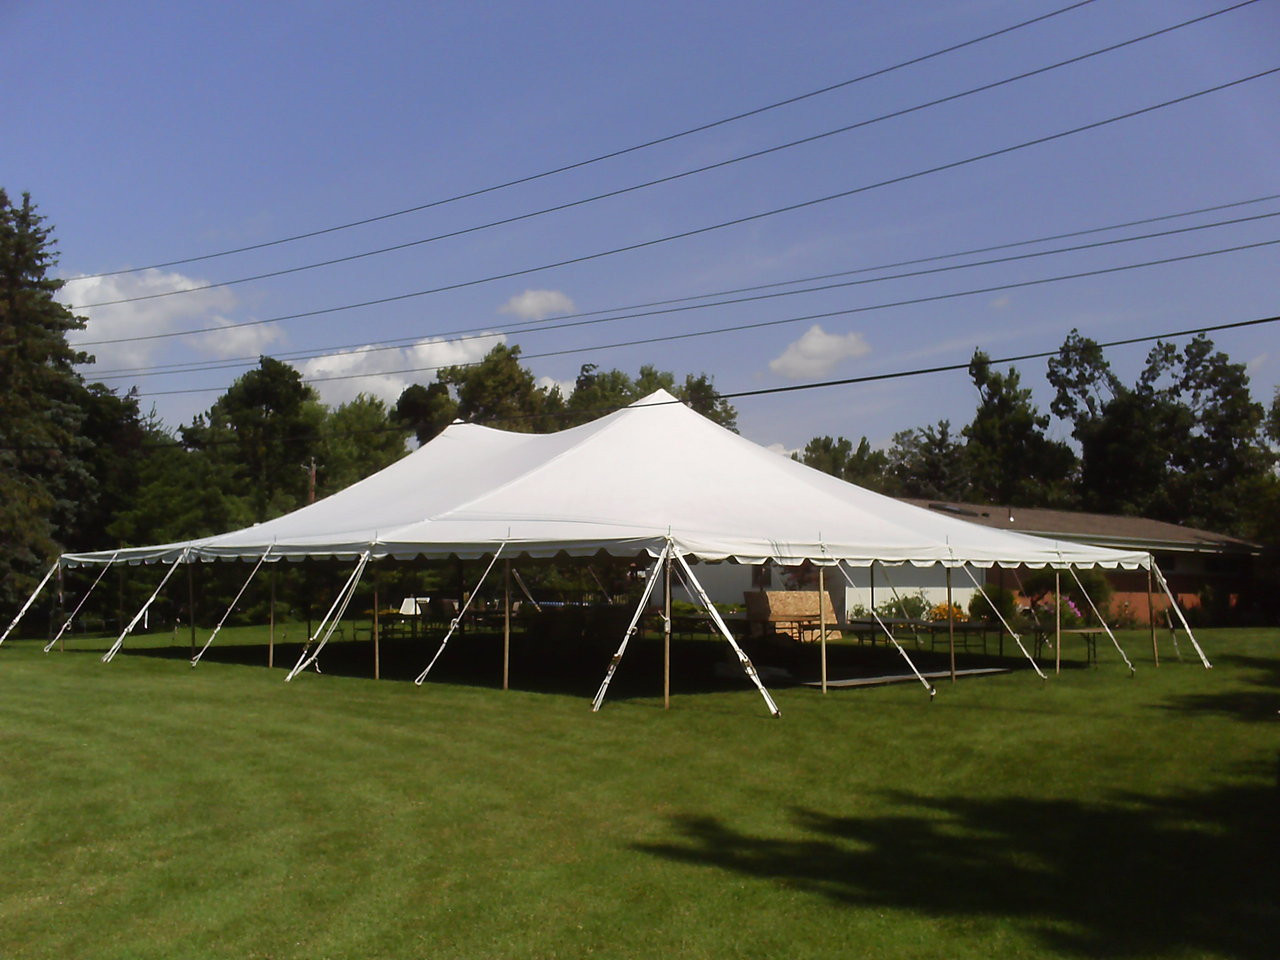 40 x 60 Sectional Canopy Pole Tent shown as 40x80 & 40 x 60 Sectional Canopy Pole Tent Rental Starting At: - ABCWNYrental